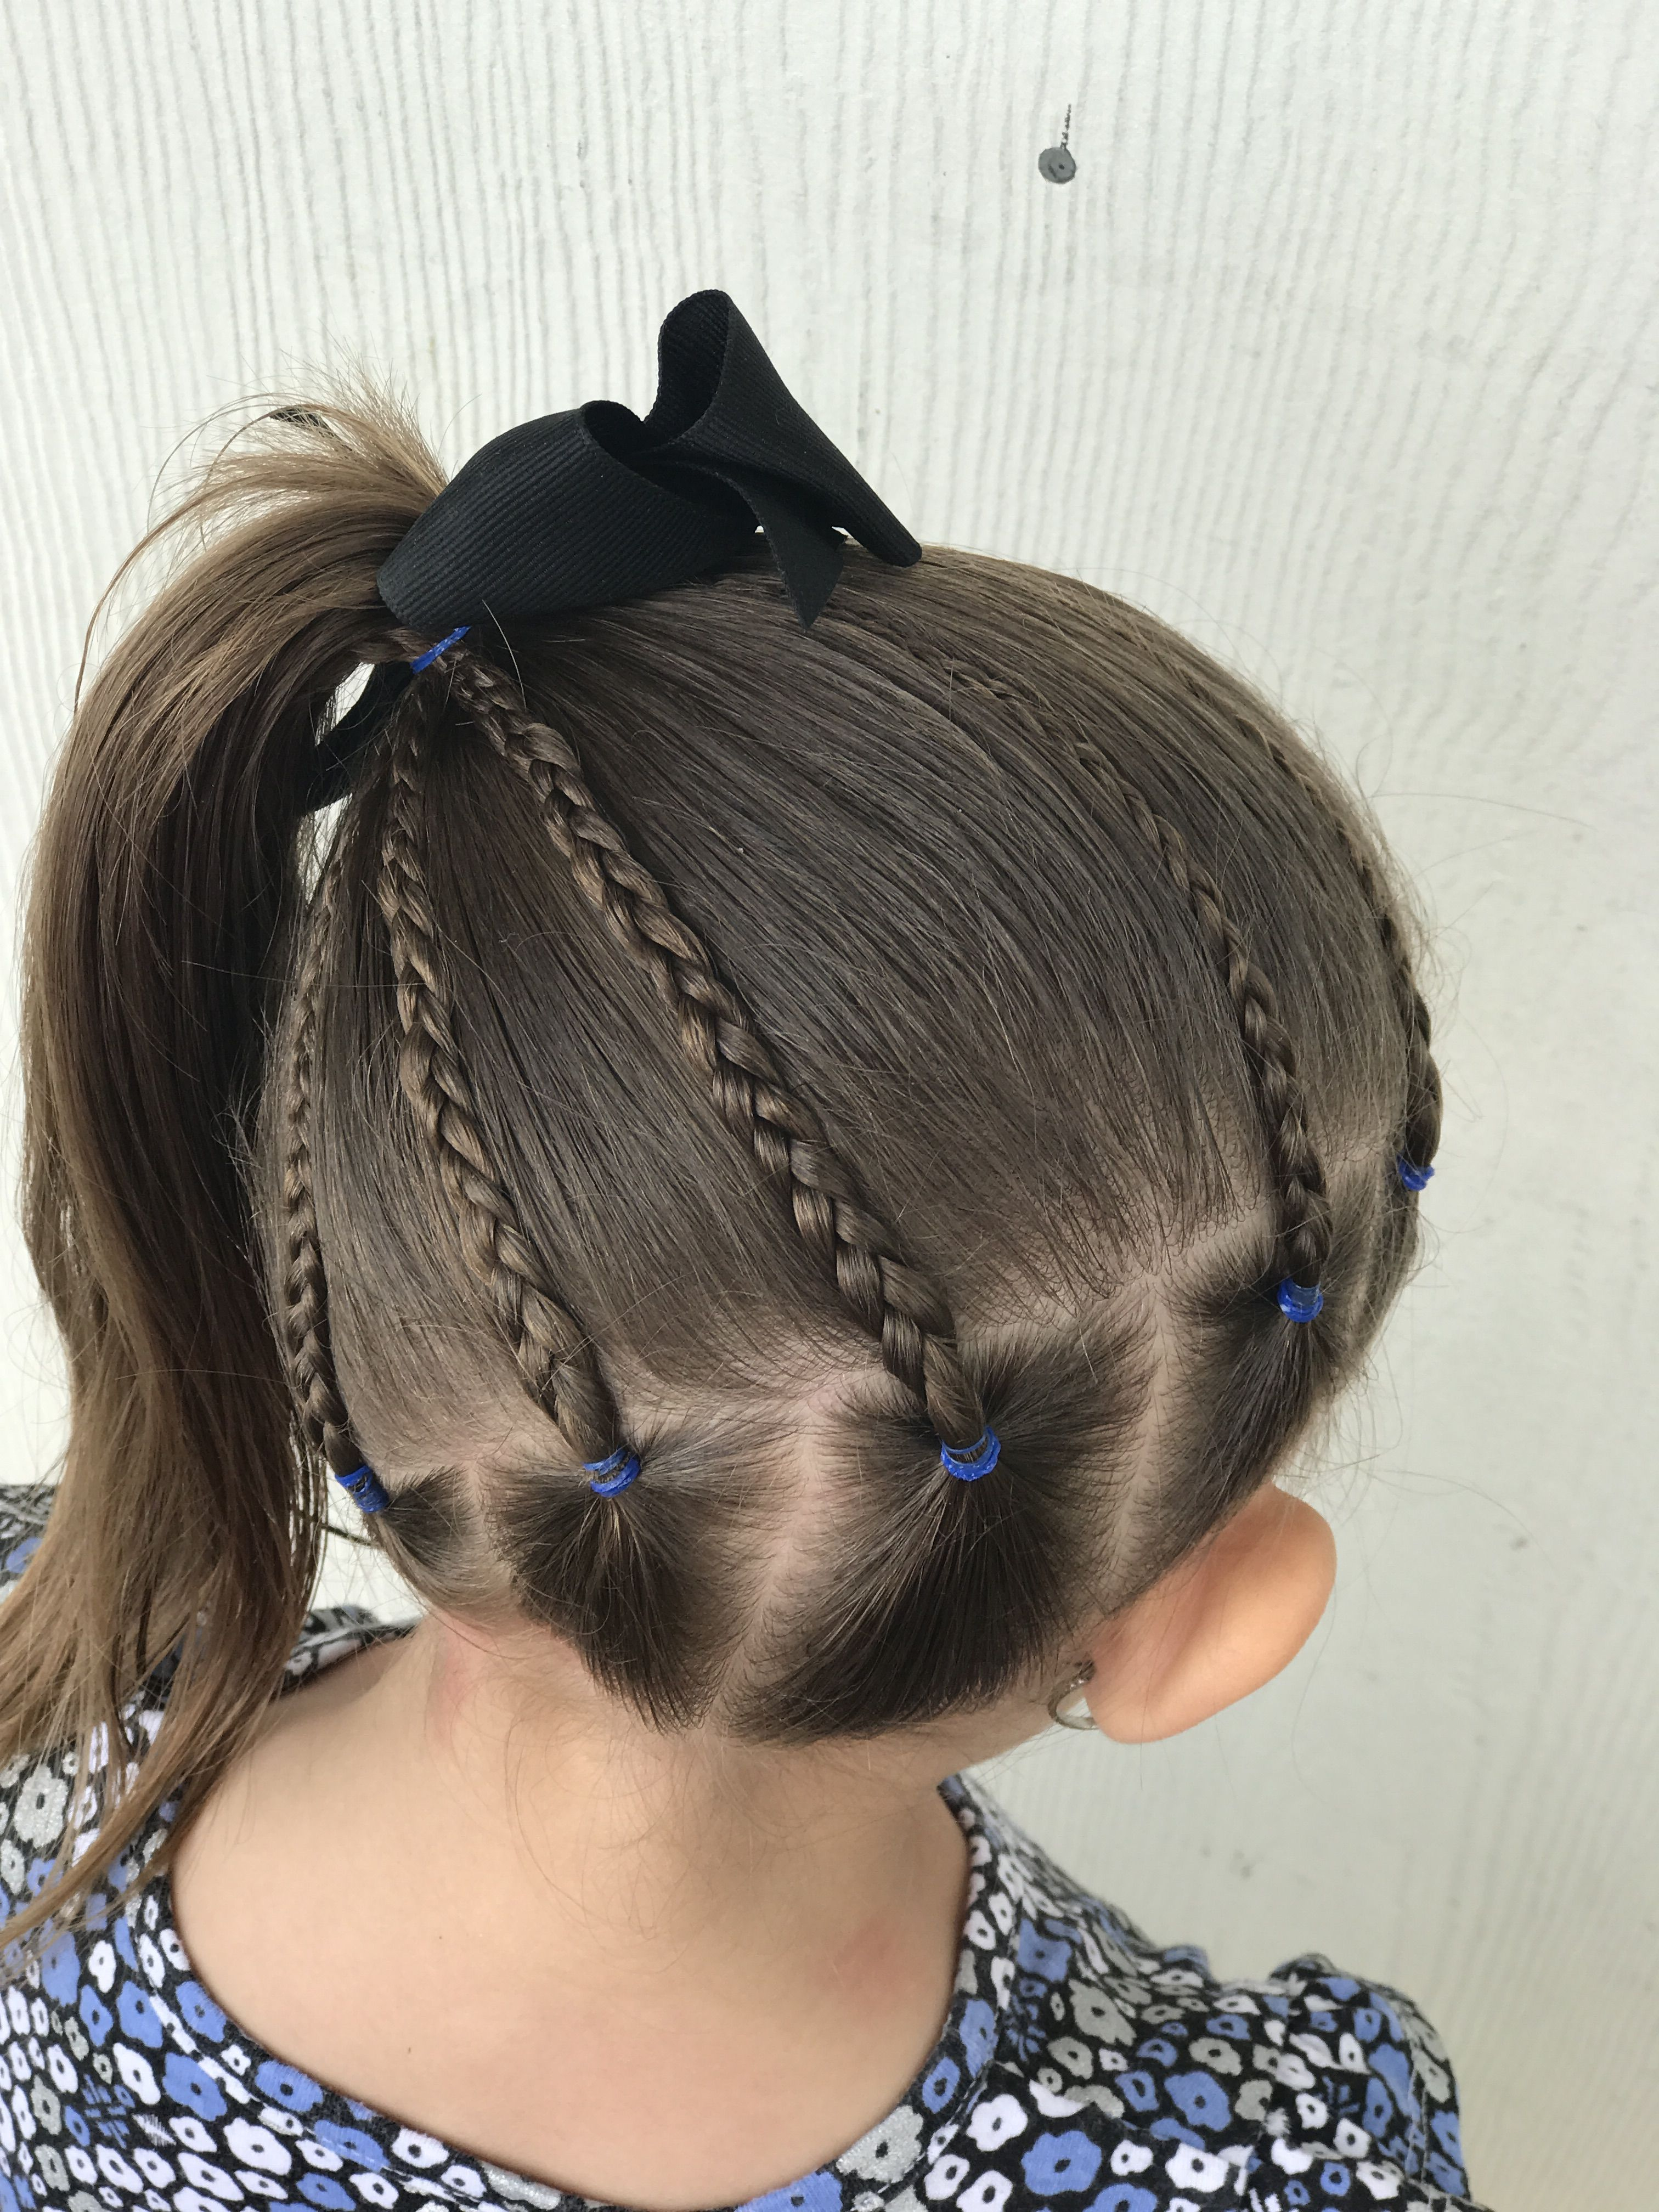 cute hairstyles for little girls, toddlers, young ages